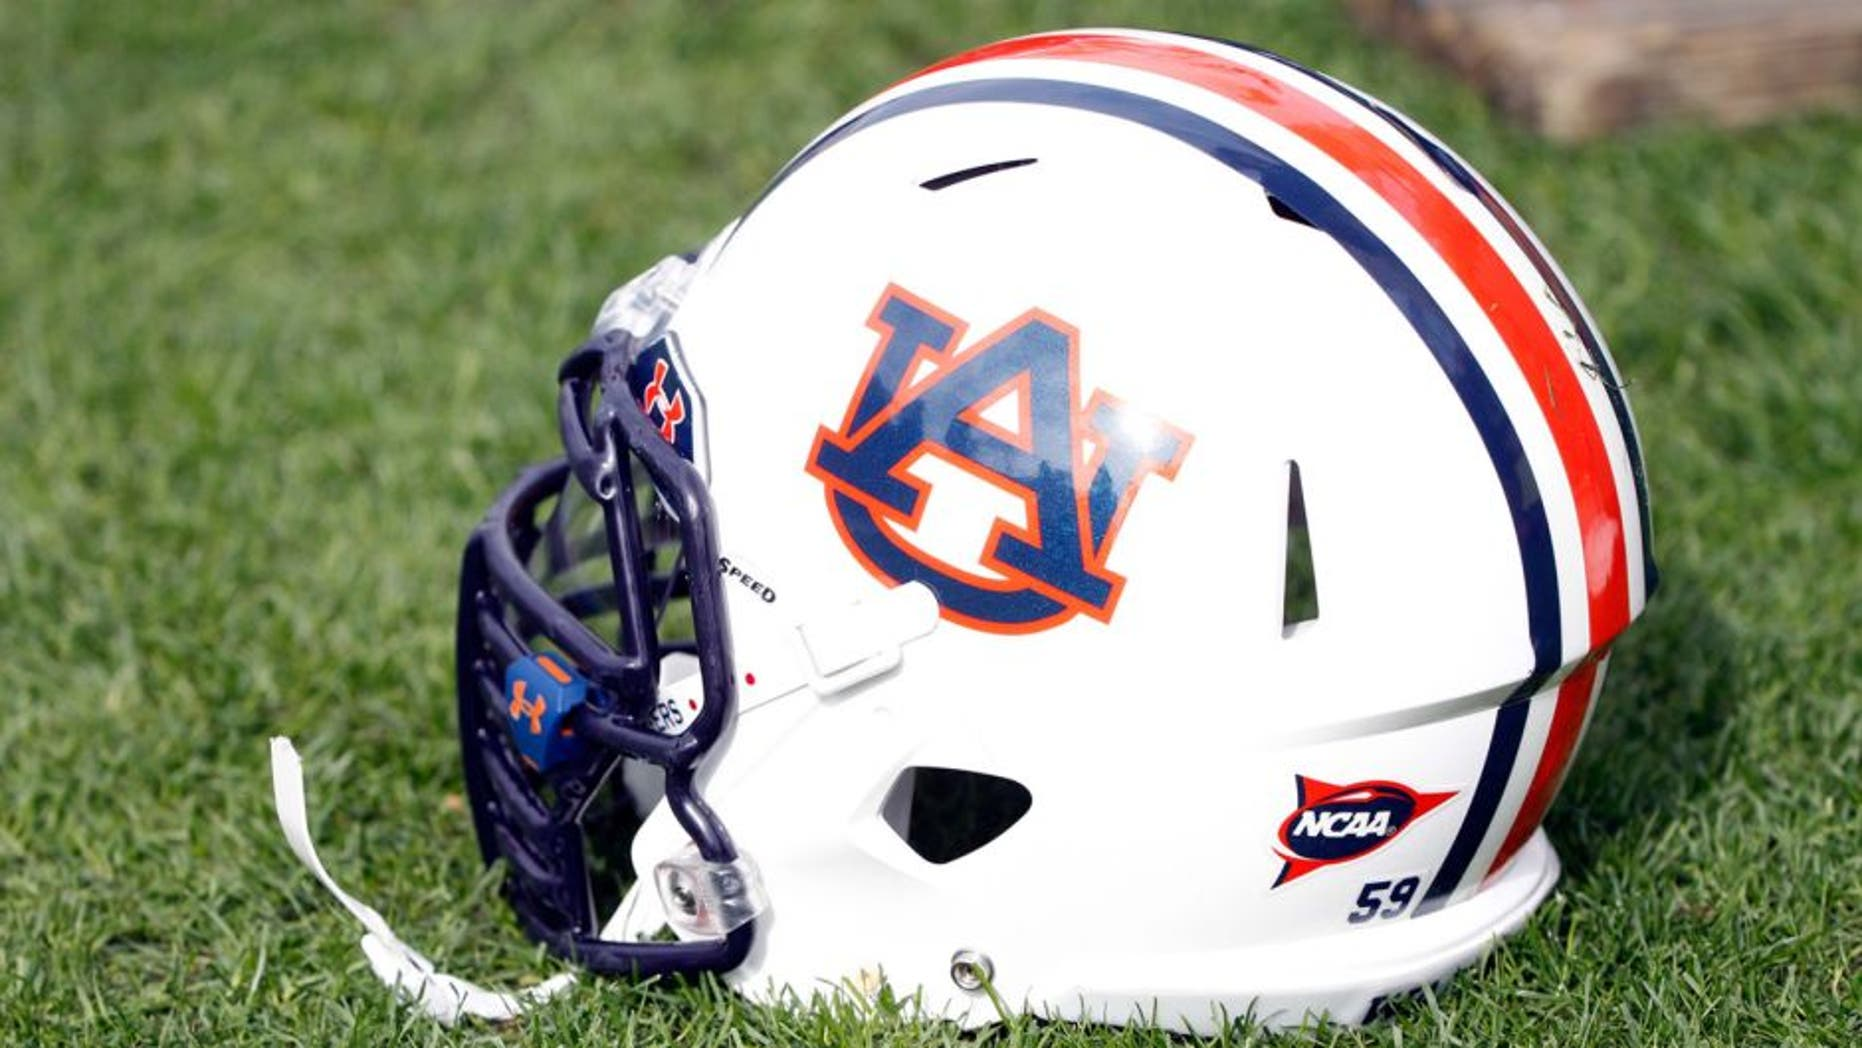 Jan 1, 2015; Tampa, FL, USA; Auburn Tigers helmet during the second half in the 2015 Outback Bowl at Raymond James Stadium. Wisconsin Badgers defeated the Auburn Tigers 34-31 in overtime. Mandatory Credit: Kim Klement-USA TODAY Sports